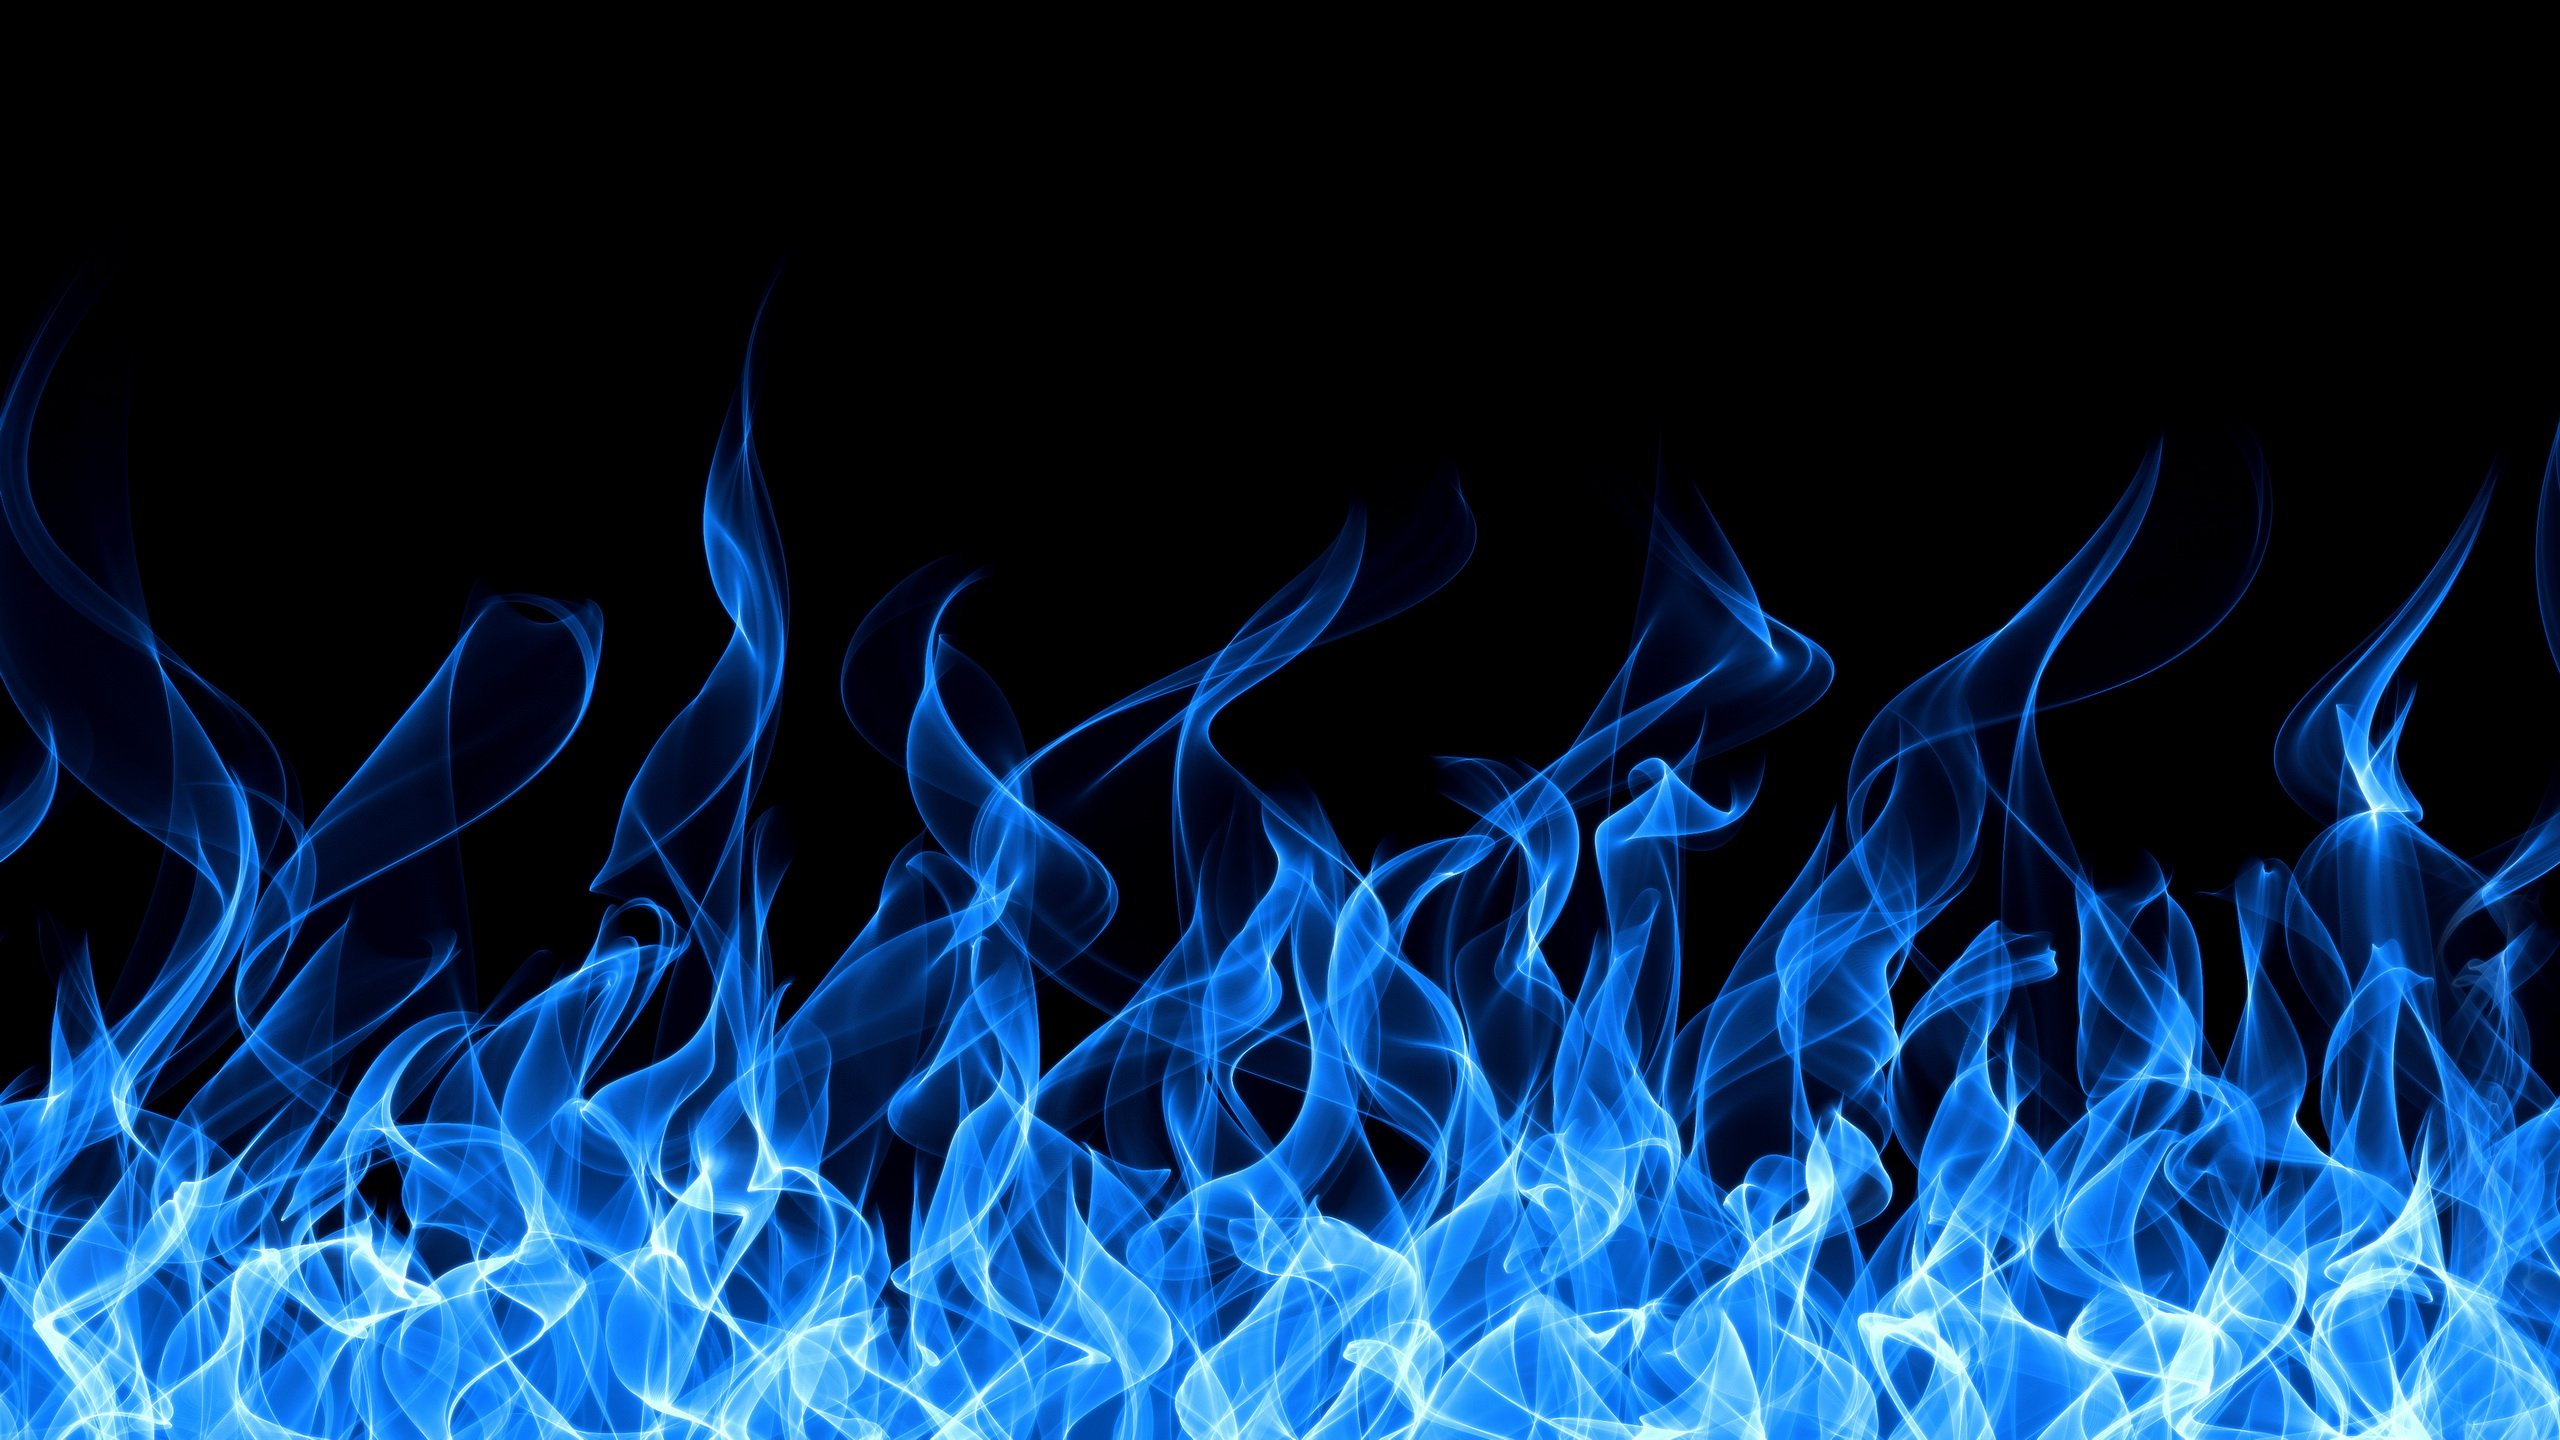 7 Flame HD Wallpapers Backgrounds 2560x1440